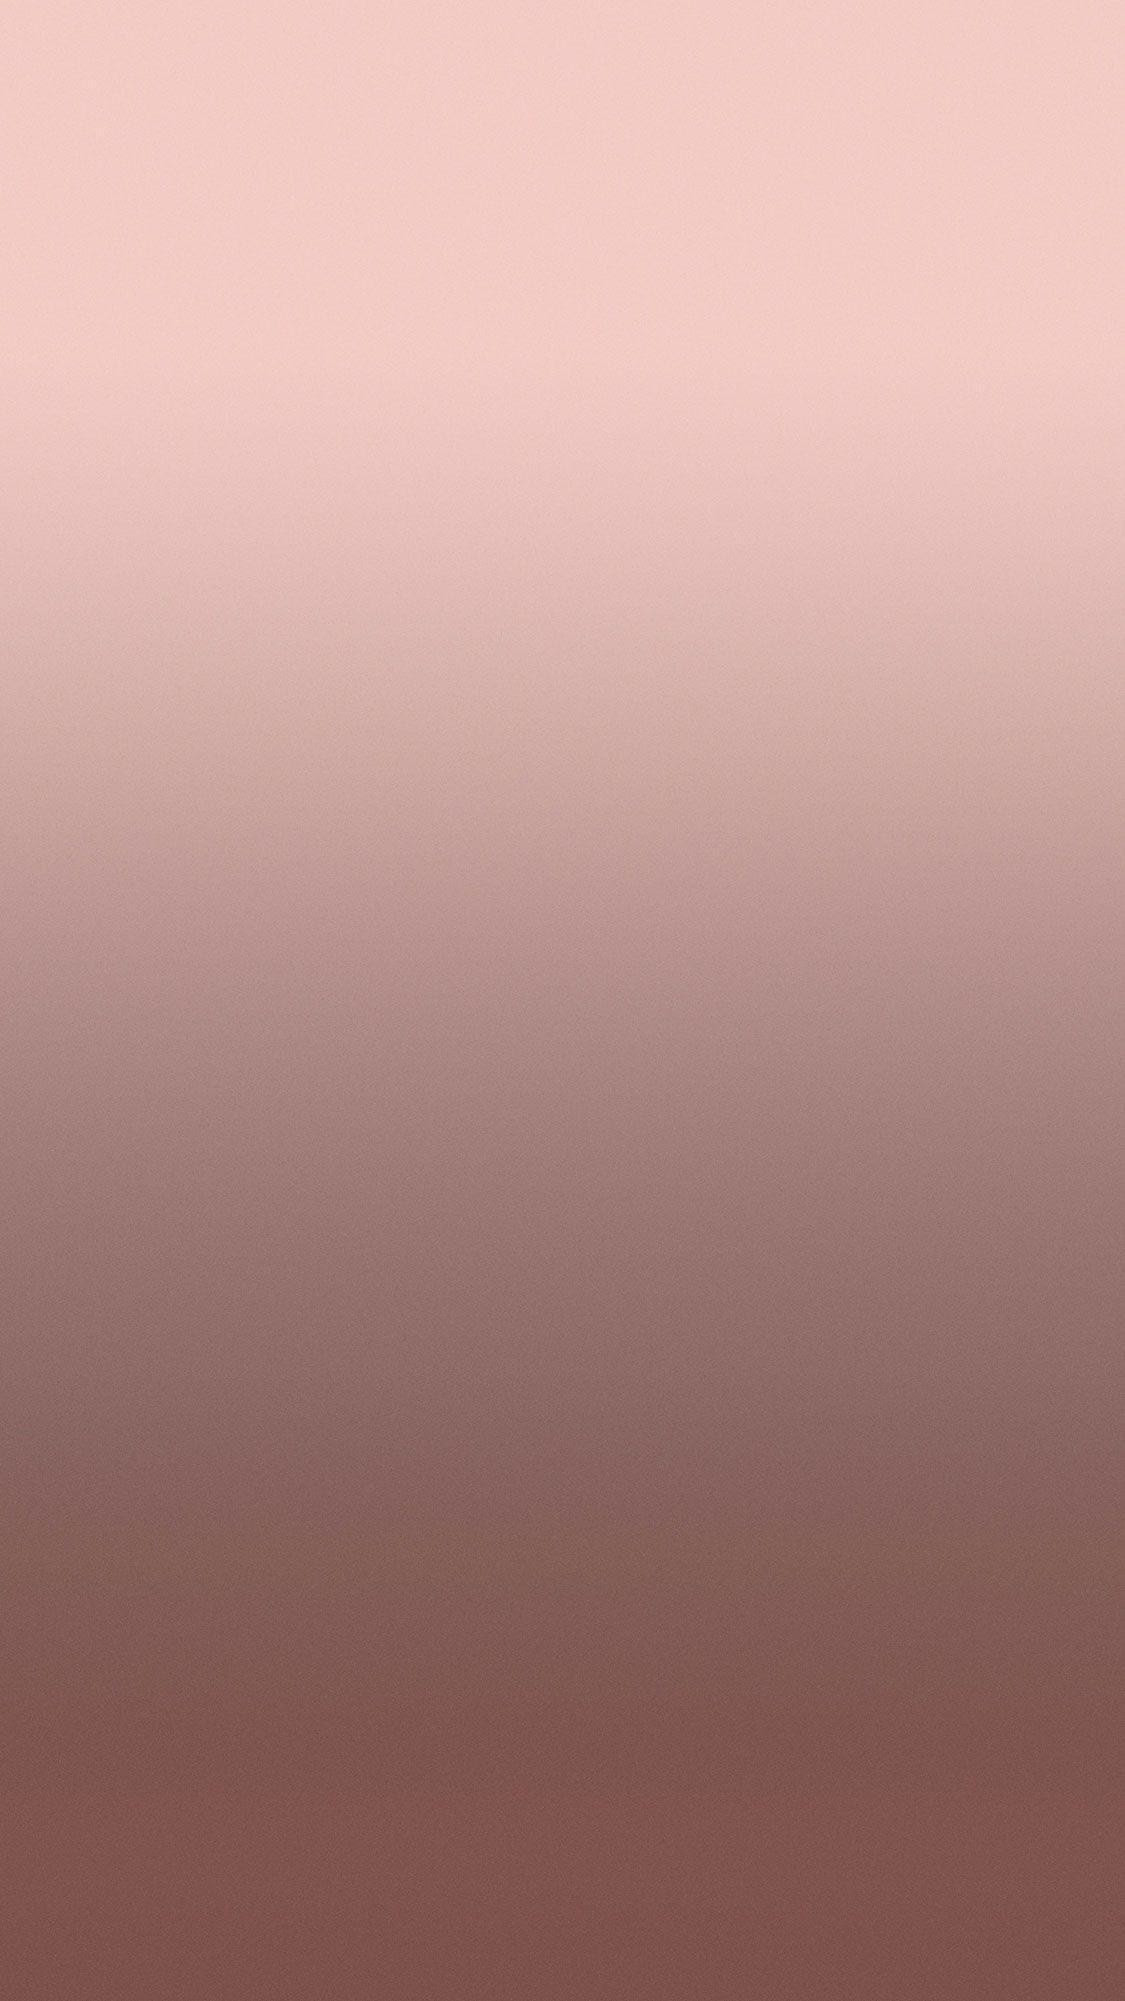 Aesthetic Rose Gold Cute Marble Backgrounds Largest Wallpaper Portal